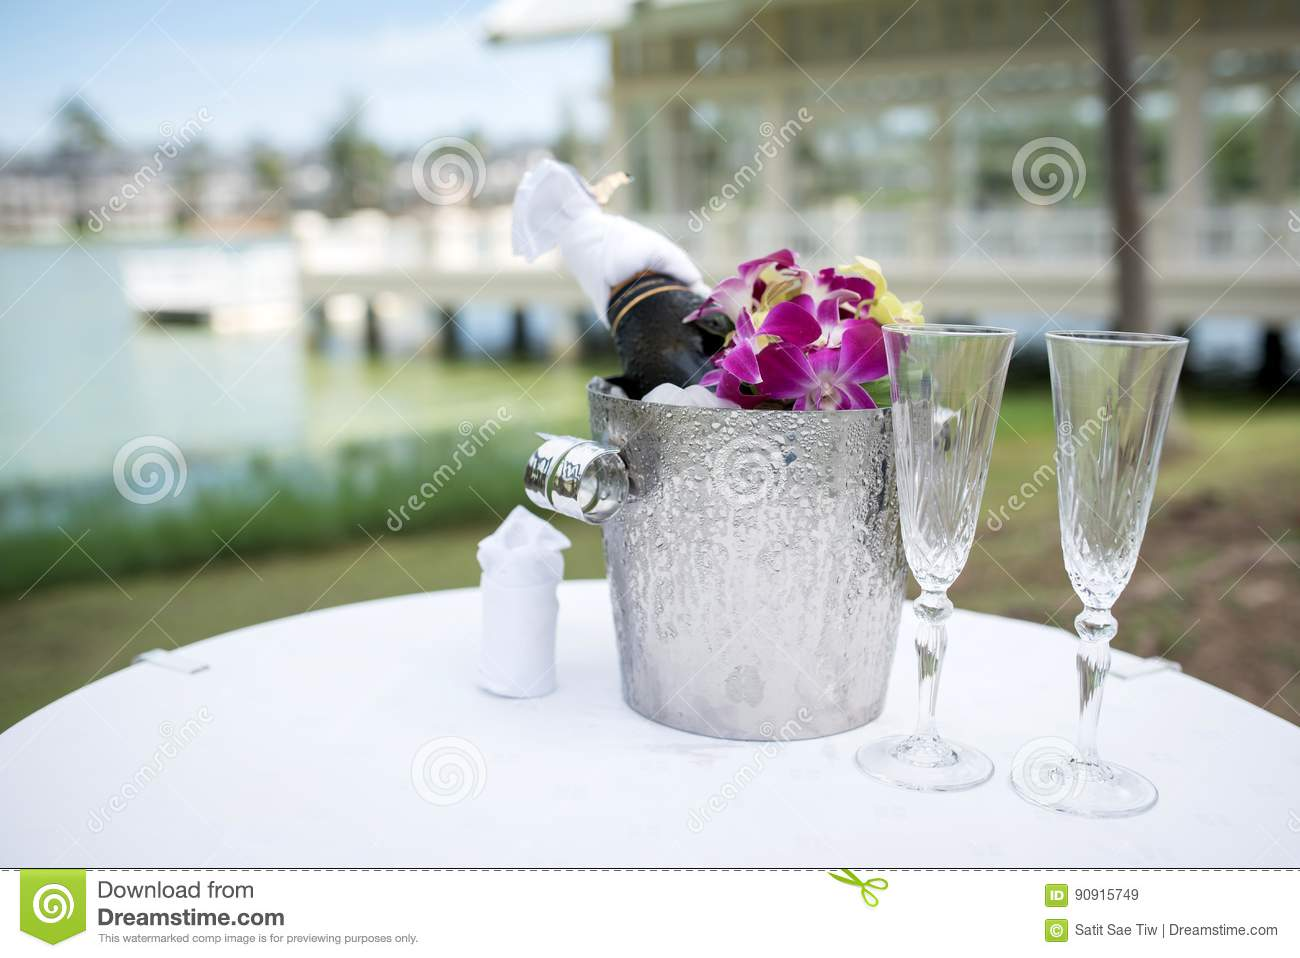 Champagne and a glass of champagne on the table for the wedding